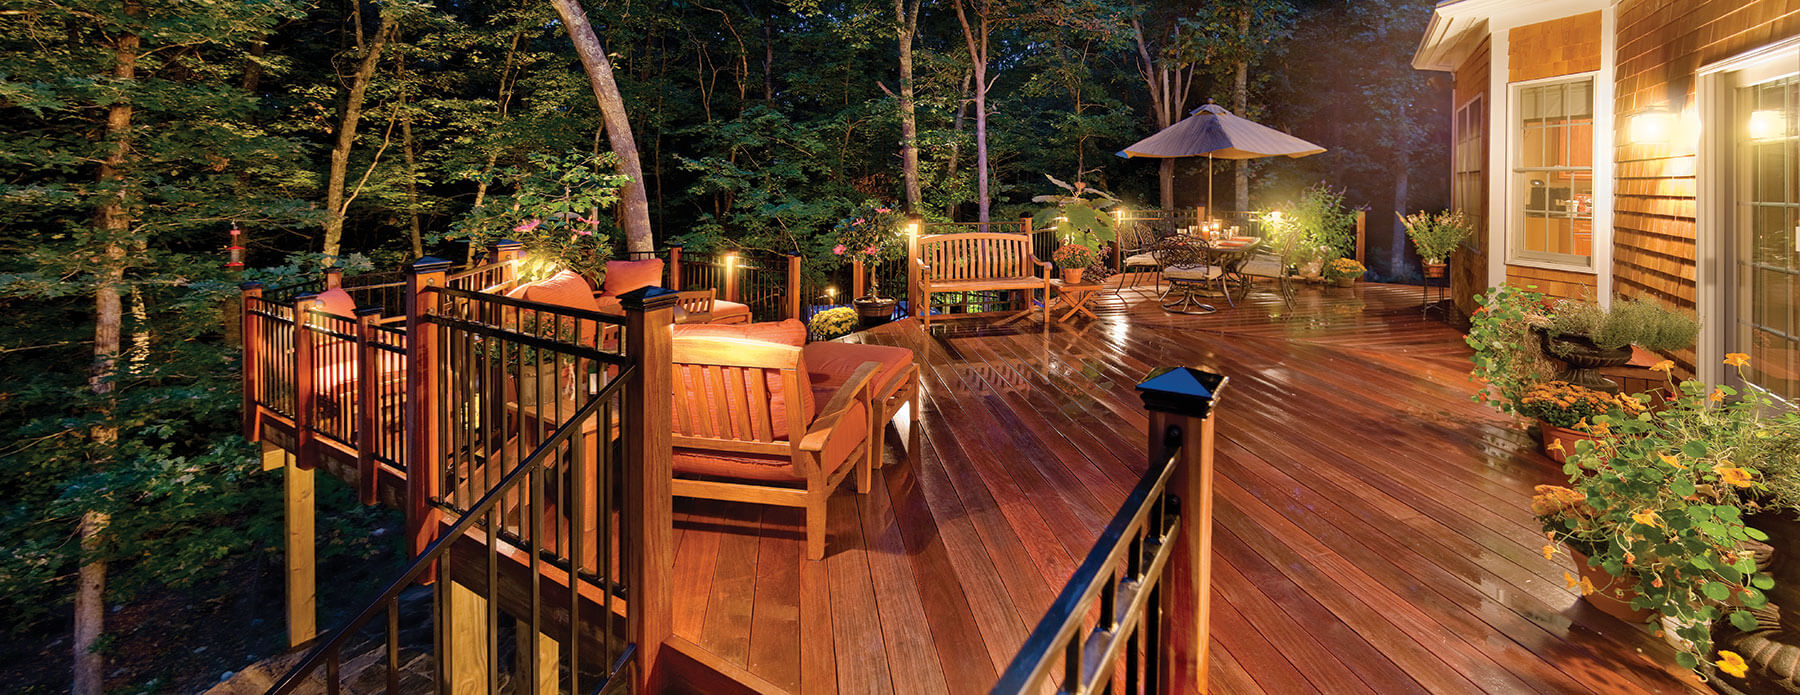 Outdoor Led Lighting Outdoor Lighting Perspectives Of Western North Carolina